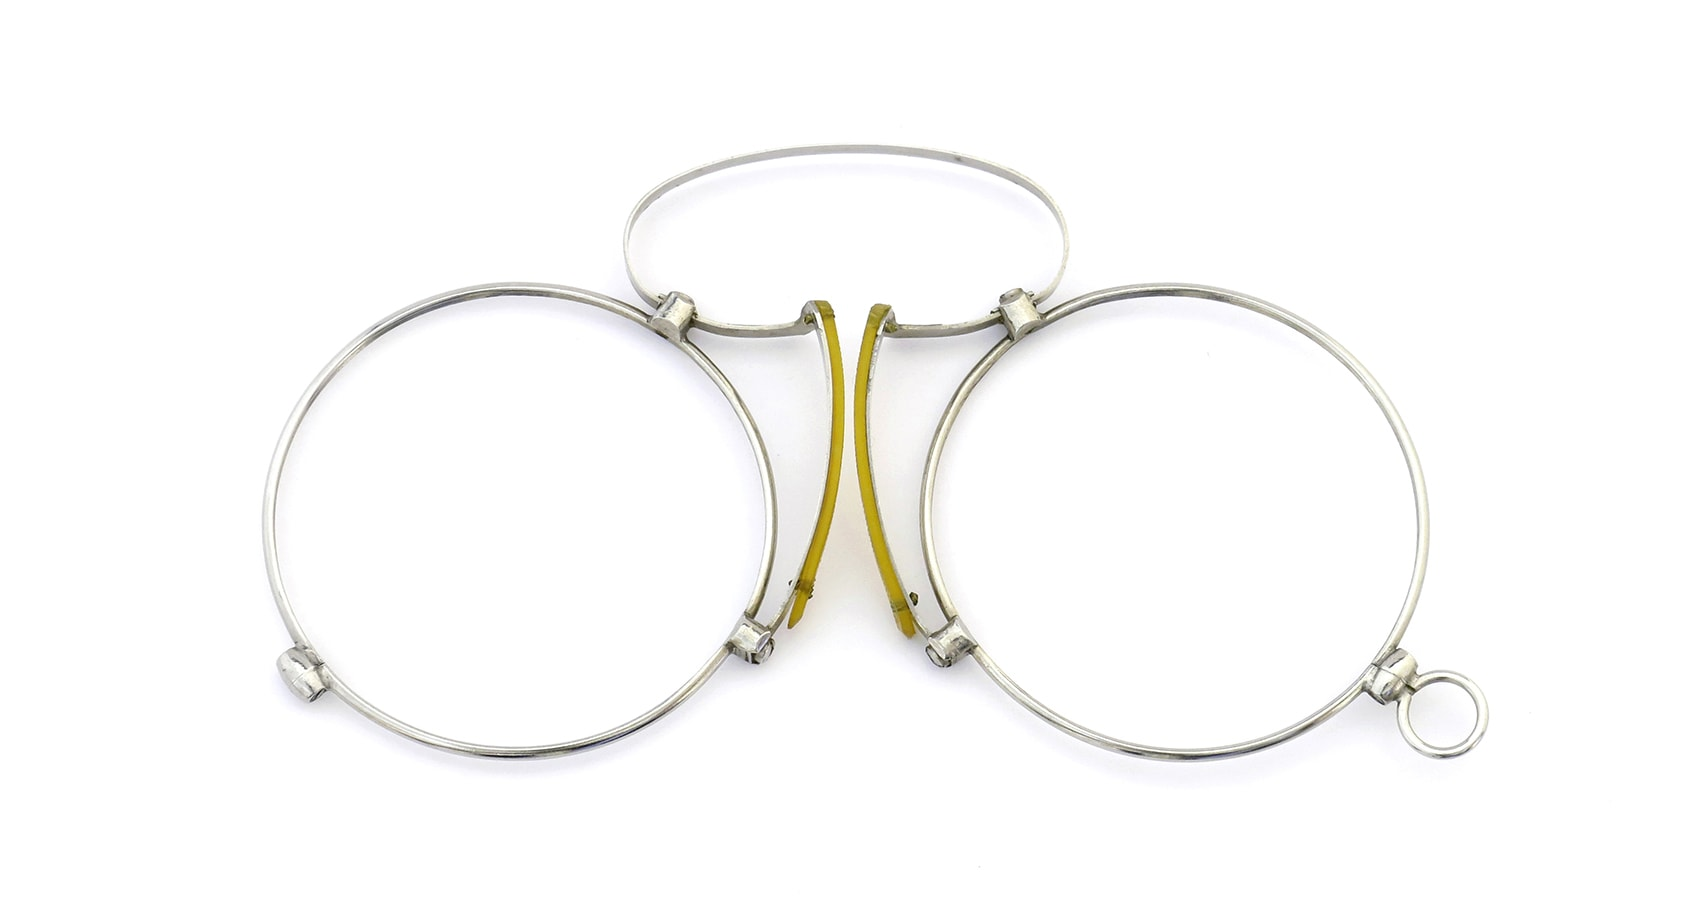 Lesca Speciality collection Pince Nez [v4] Round 2